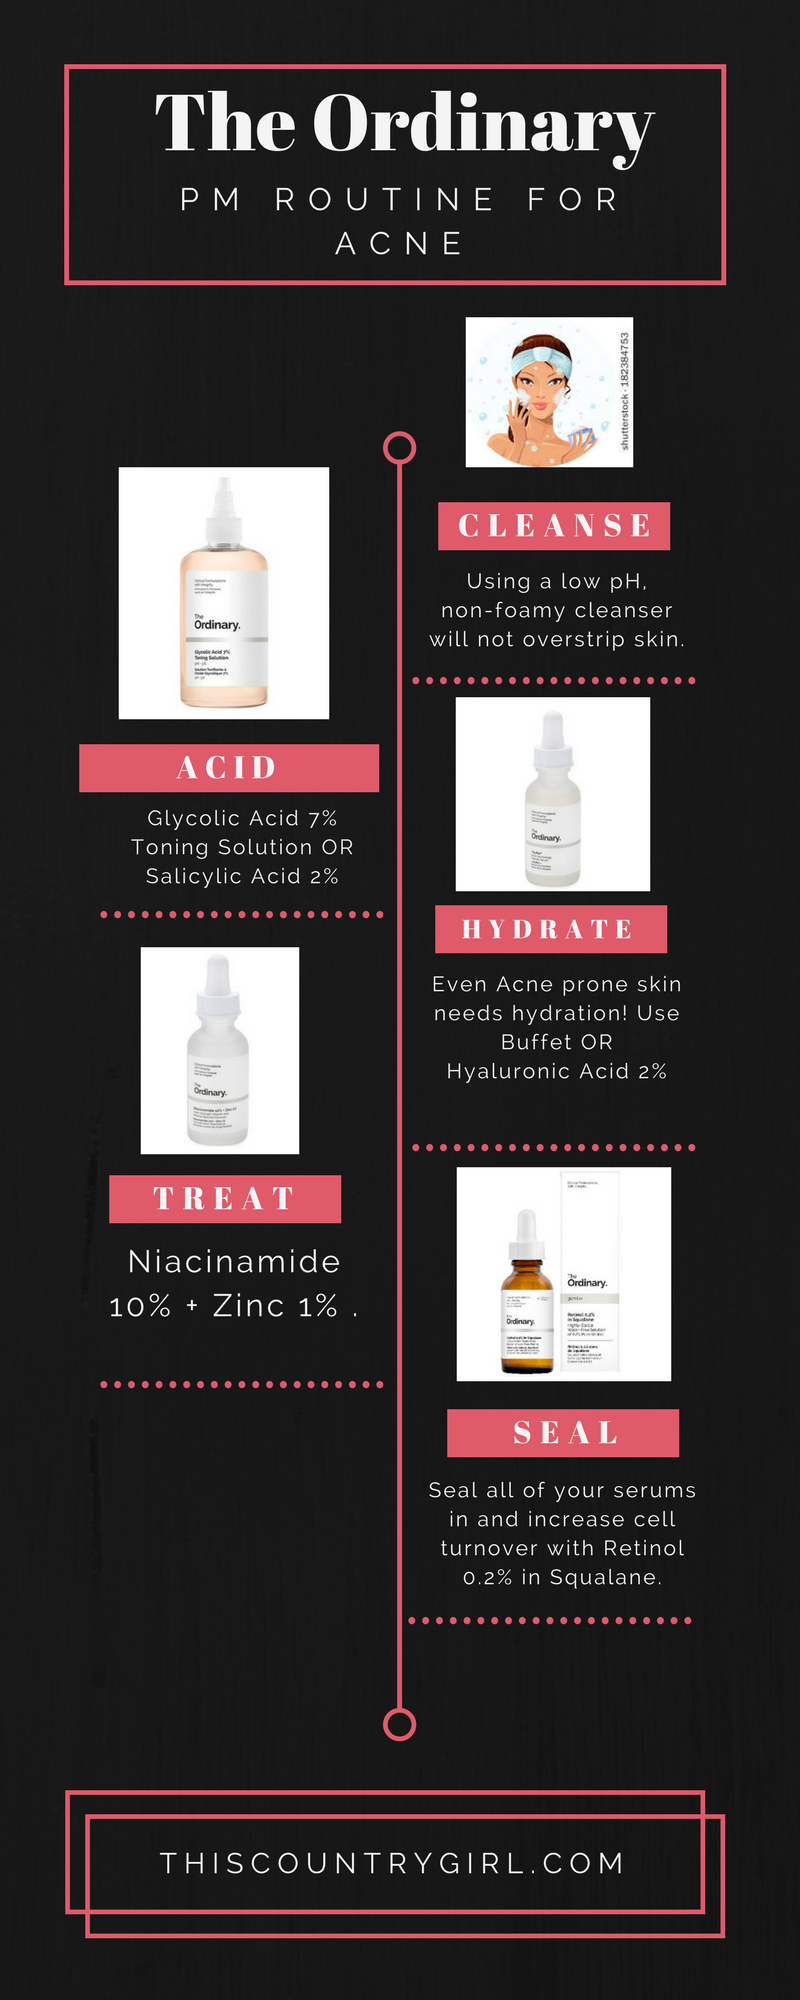 The Ordinary Night Skincare Routine for Acne Prone Skin #SkincareAcne #SkinCareRoutineFor40S #OvernightAcneSkincare #ACNE